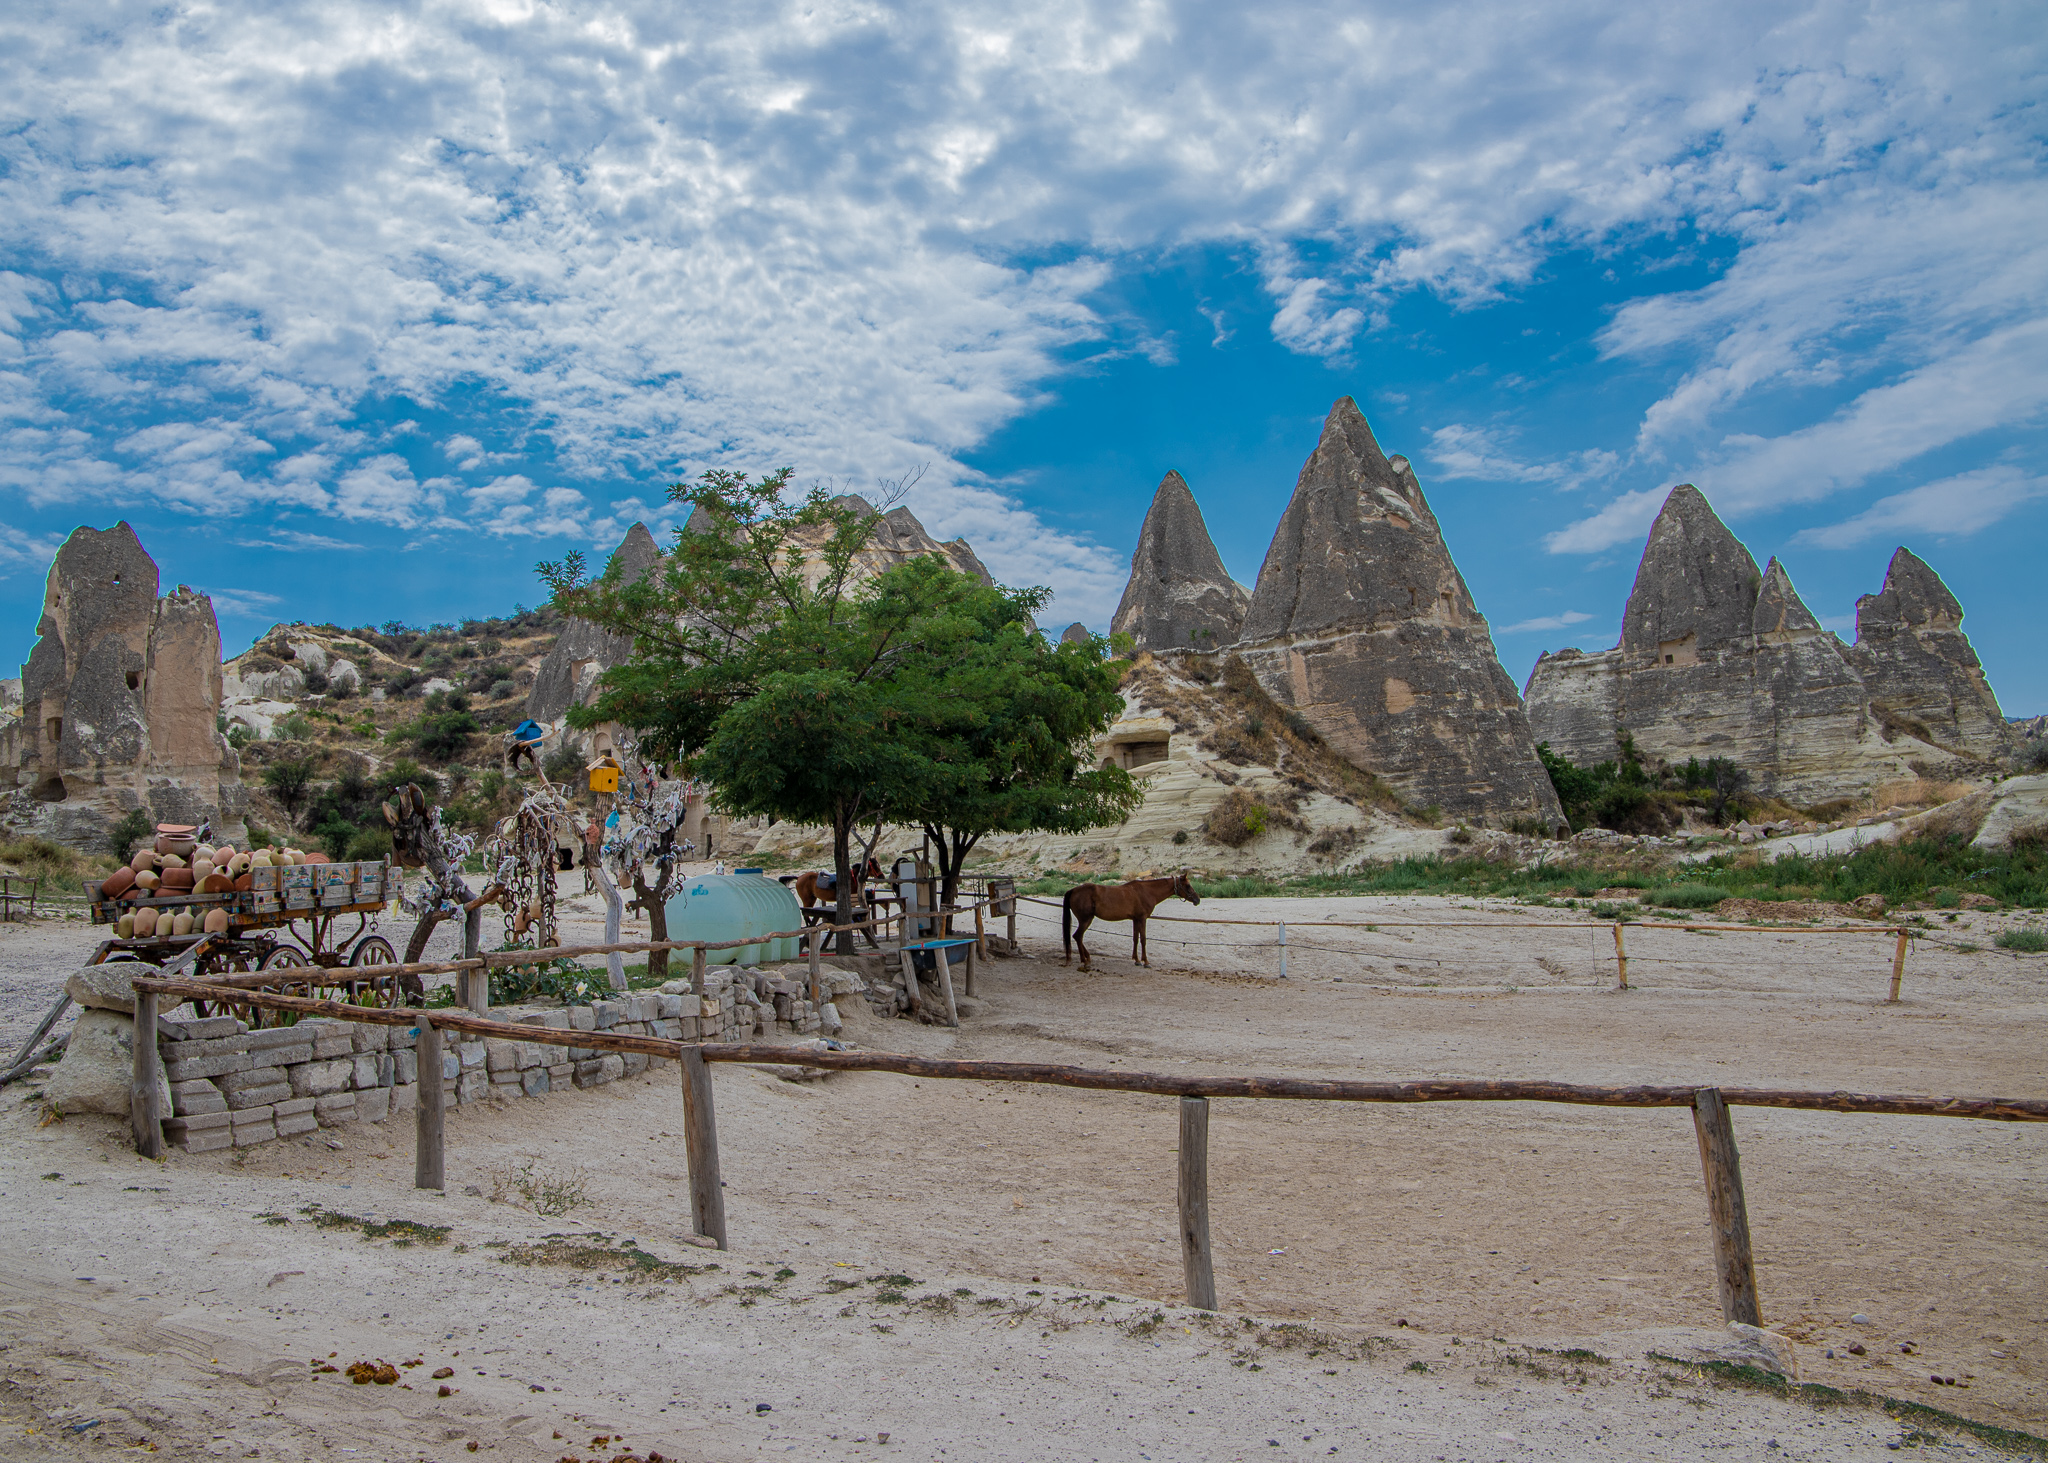 Heading towards the Goreme Open Air Museum